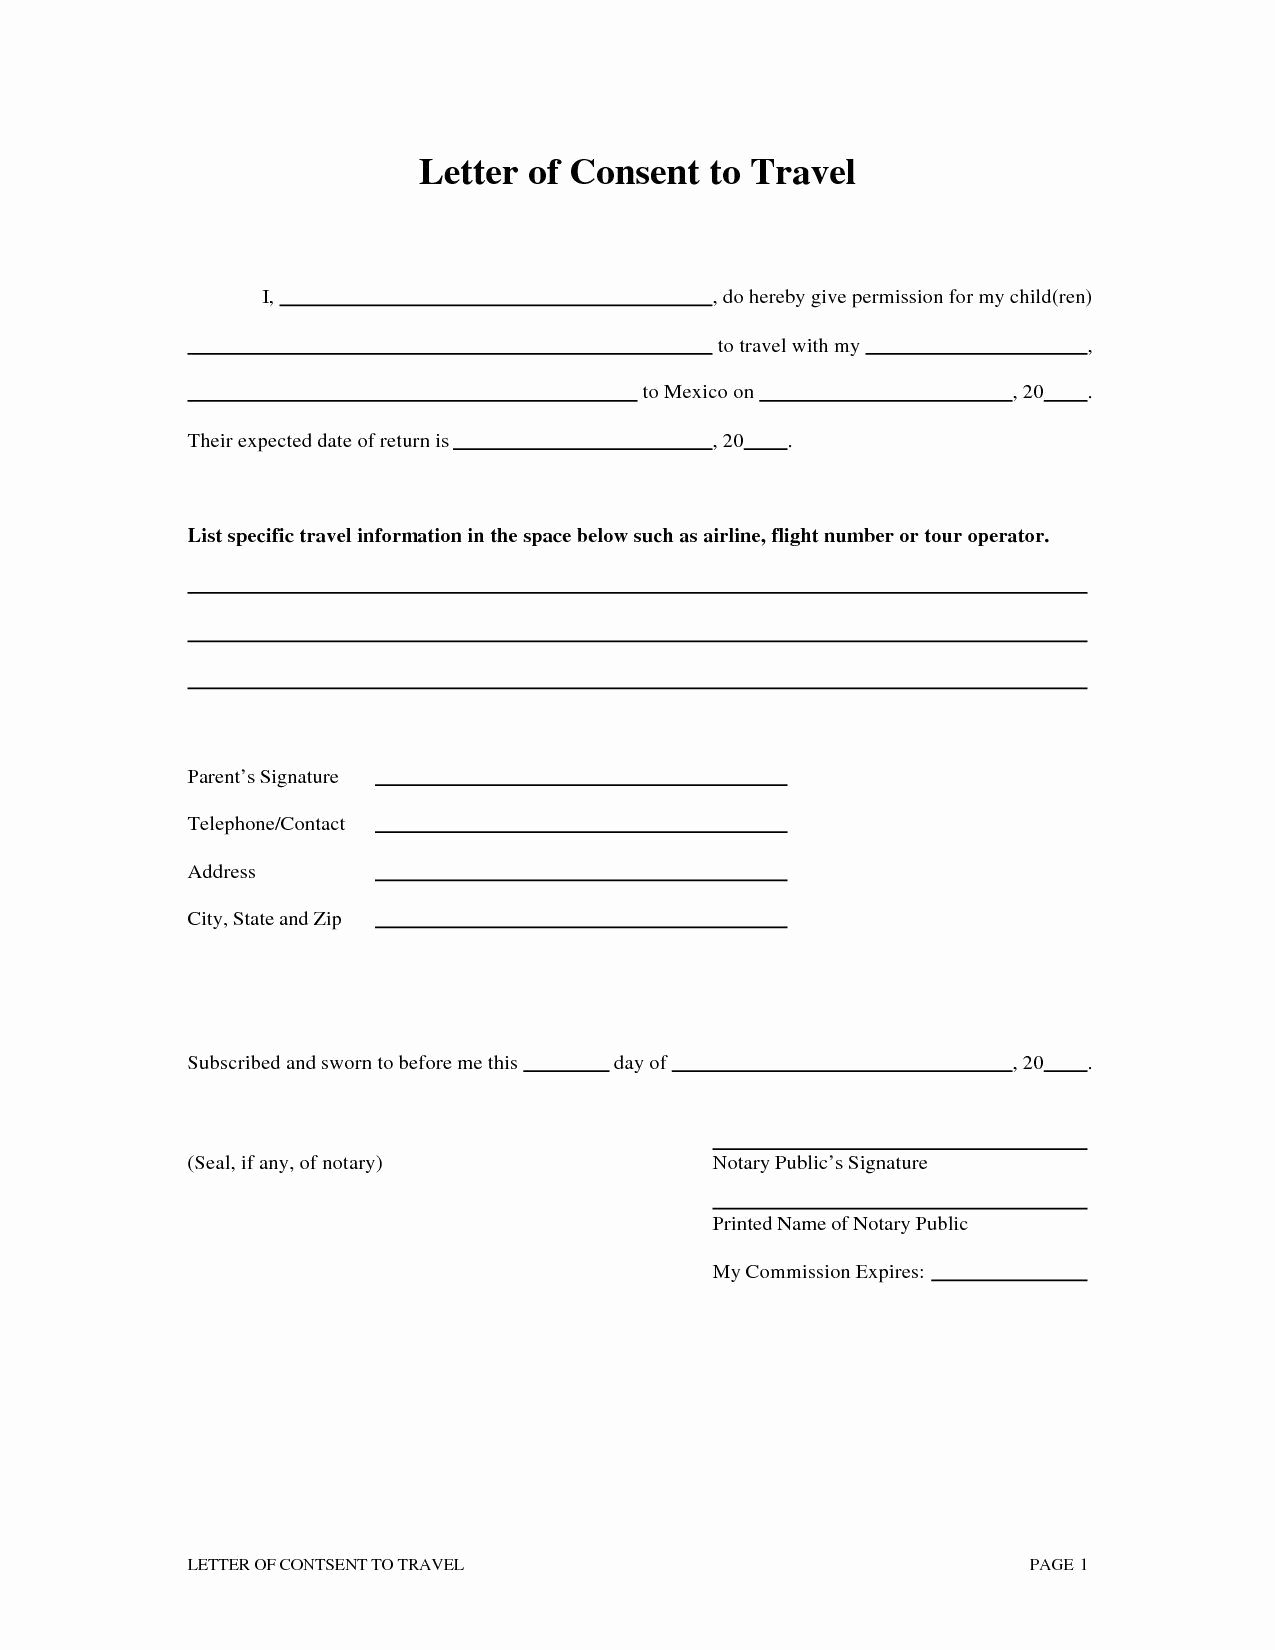 Letter Of Consent for Child to Travel Template - Free Medical Consent form Child Medical Consent form Authorization